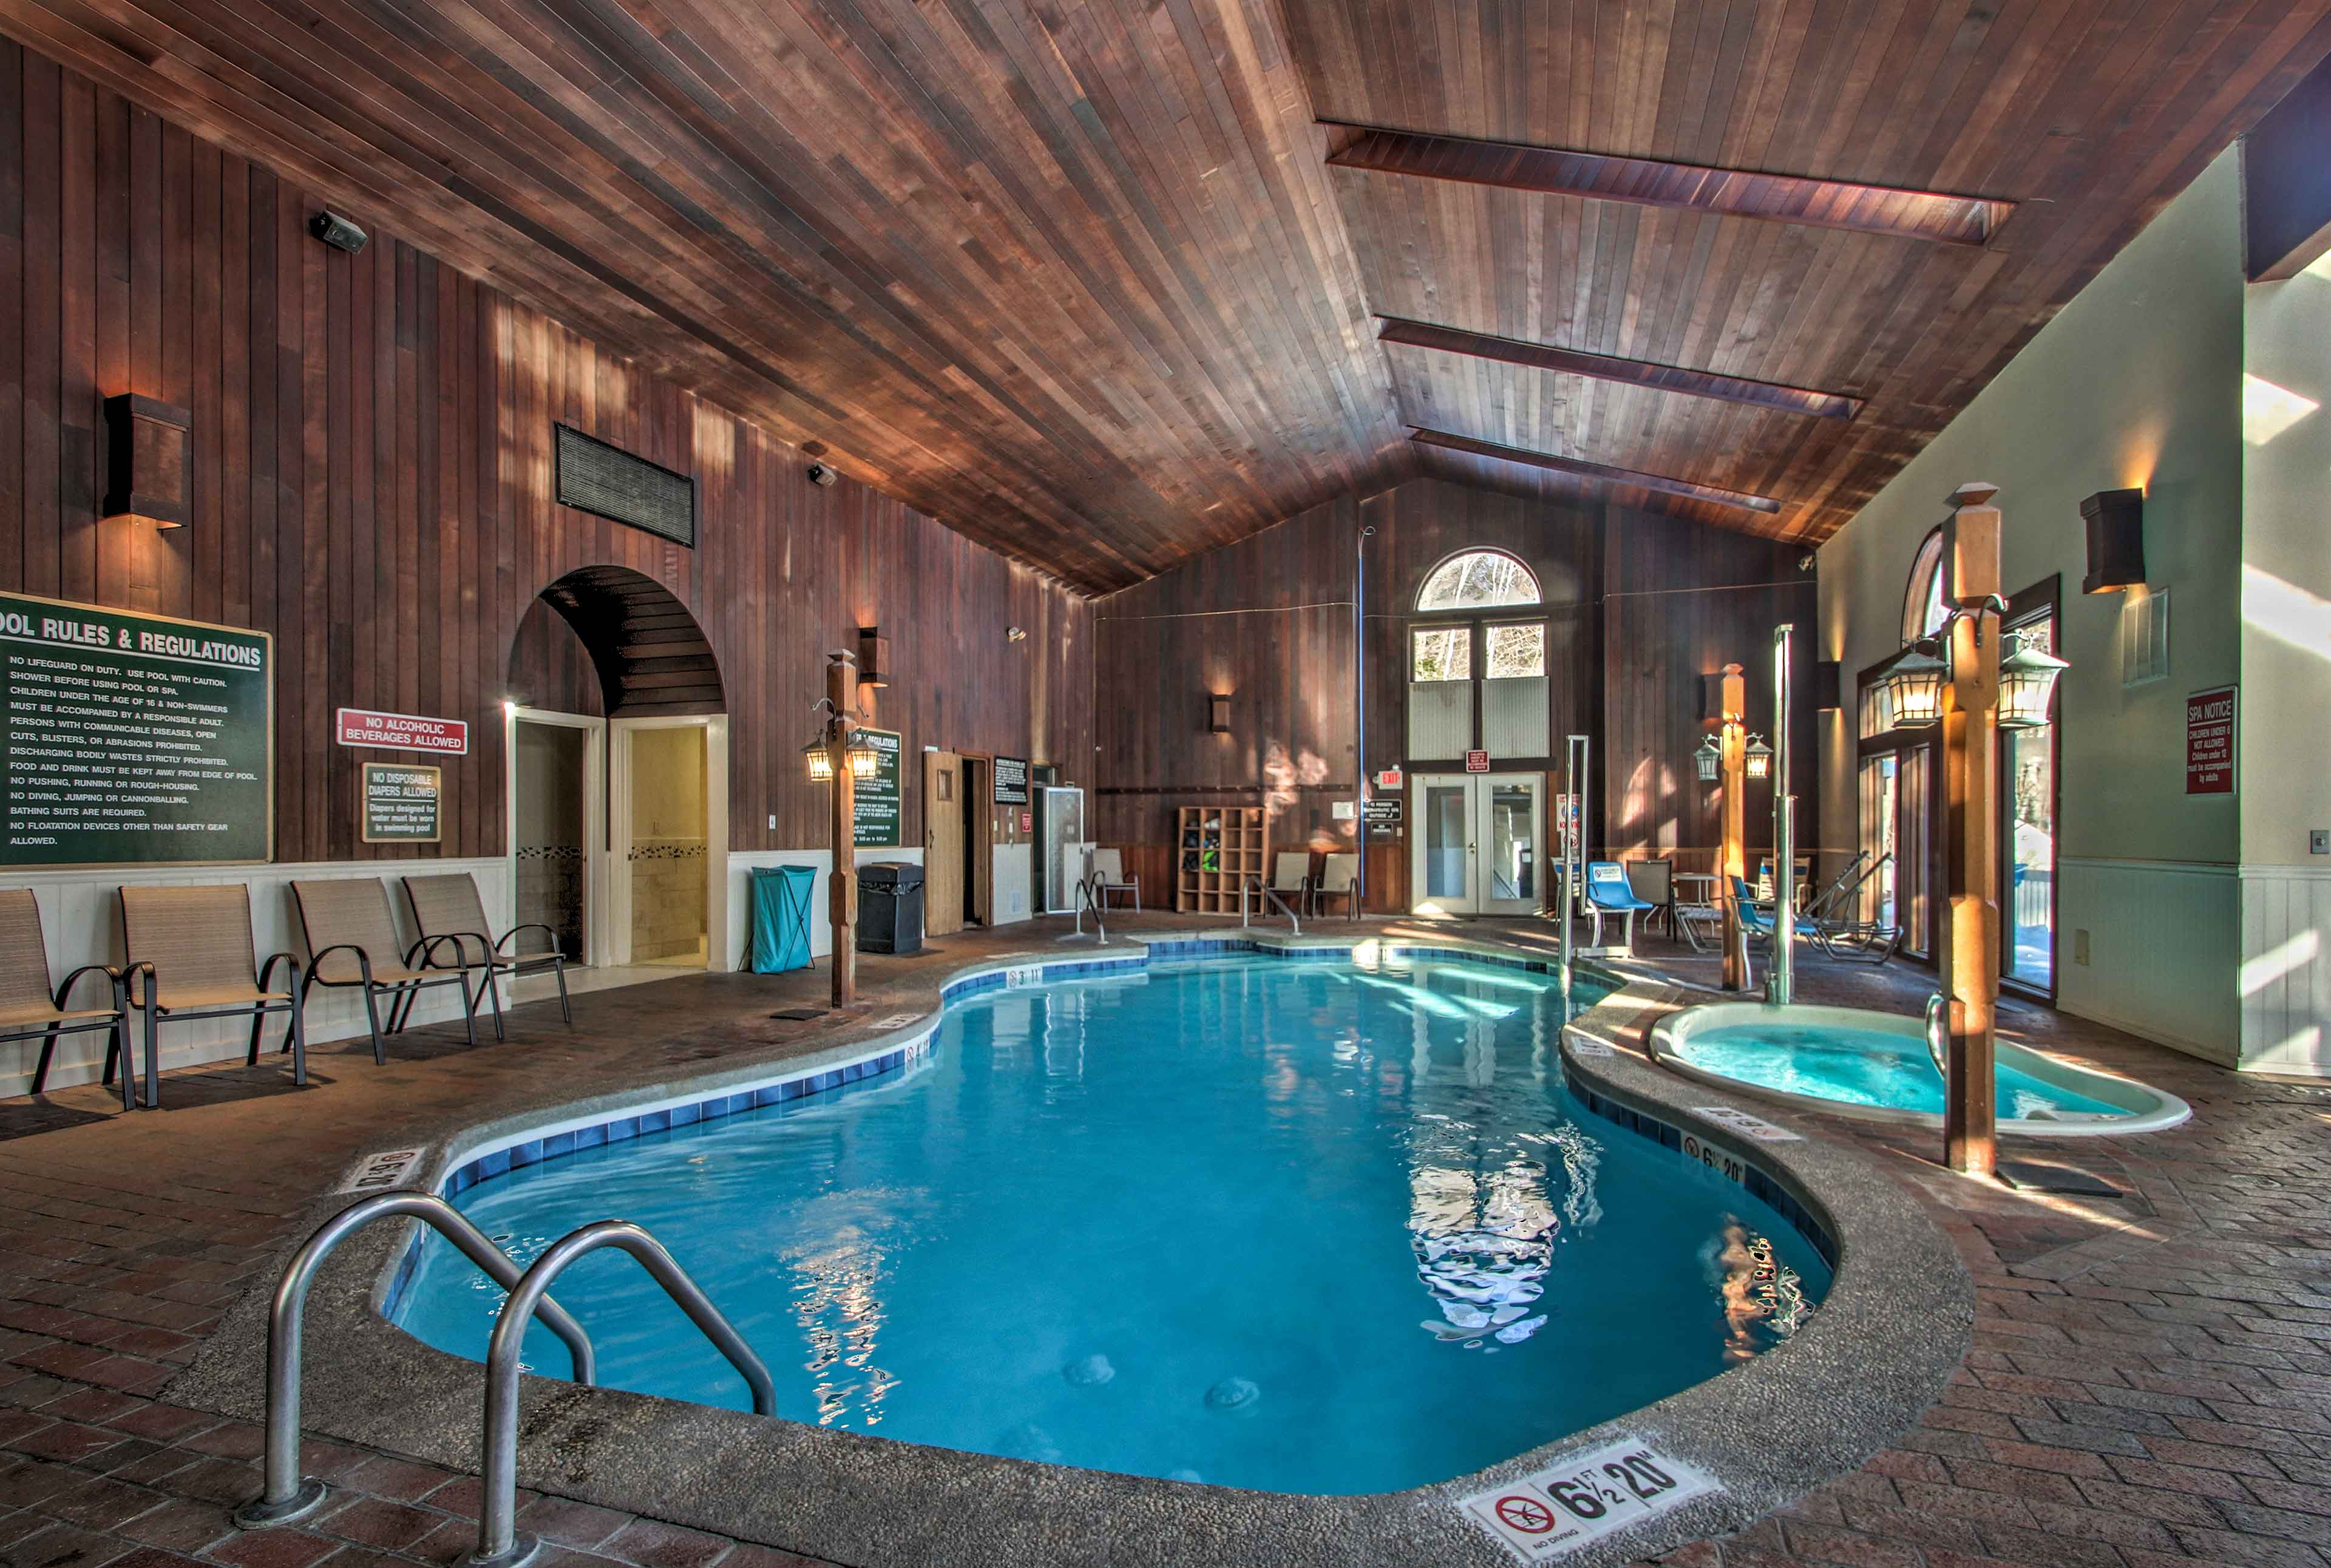 Go for a soak in the hot tub or heated pool.